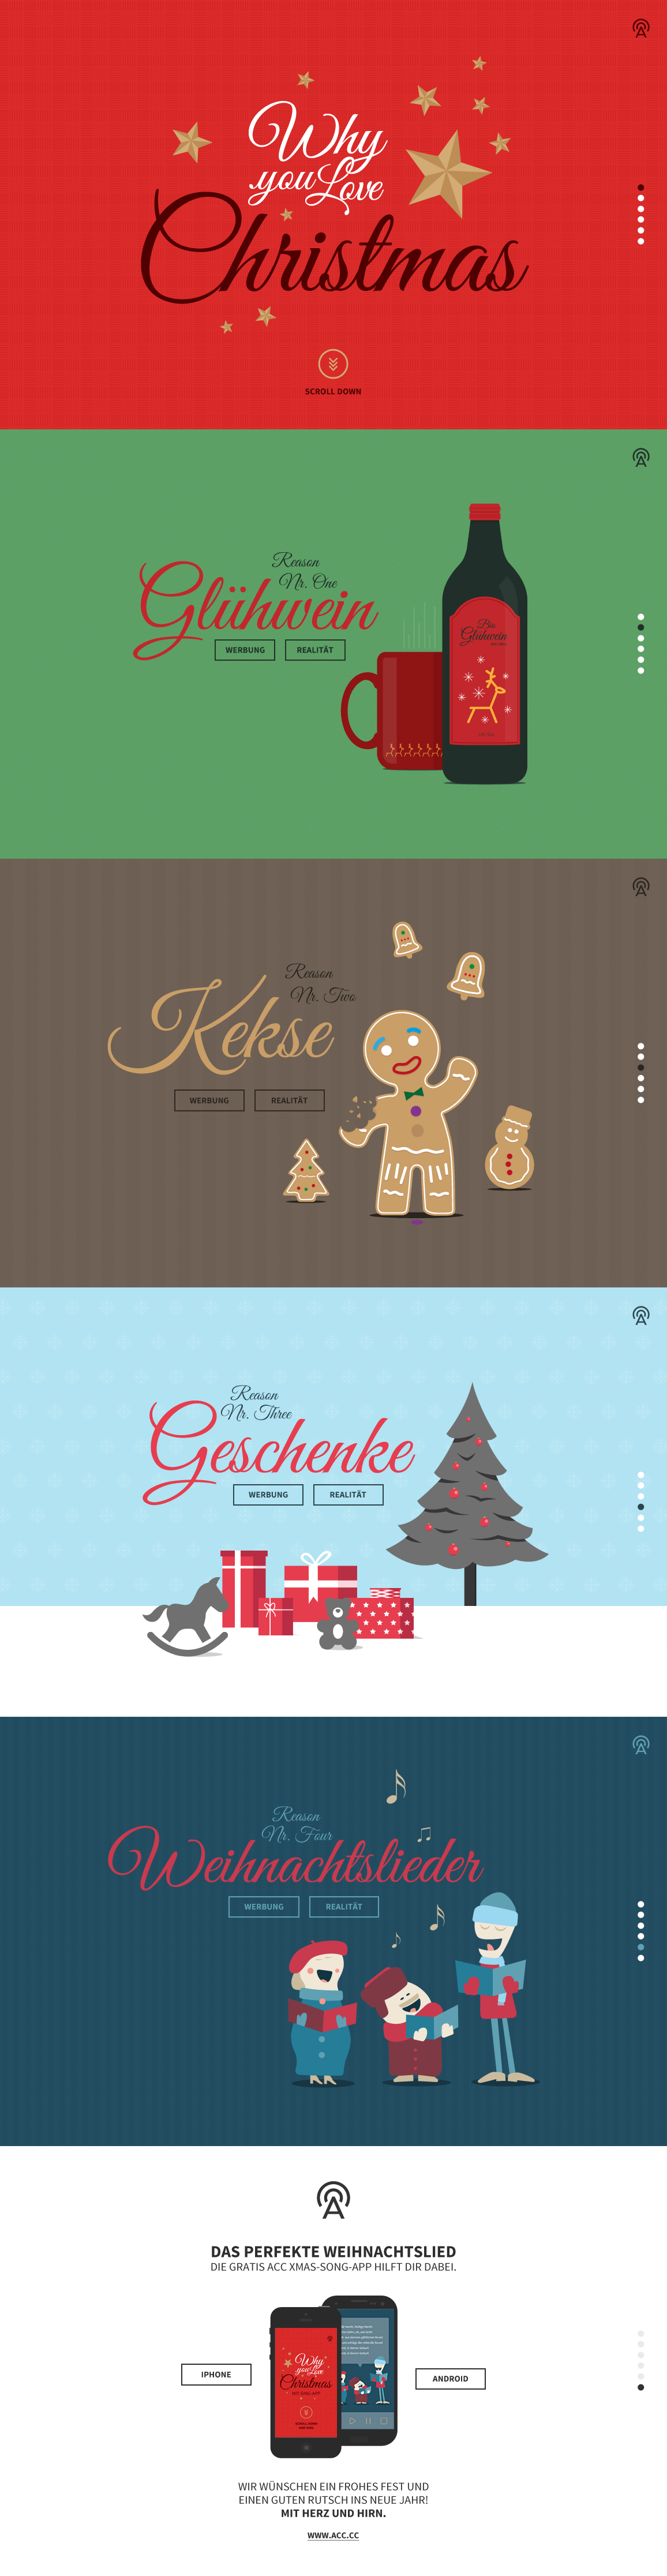 Colorful one pager that shows us why we love/hate Christmas through ...